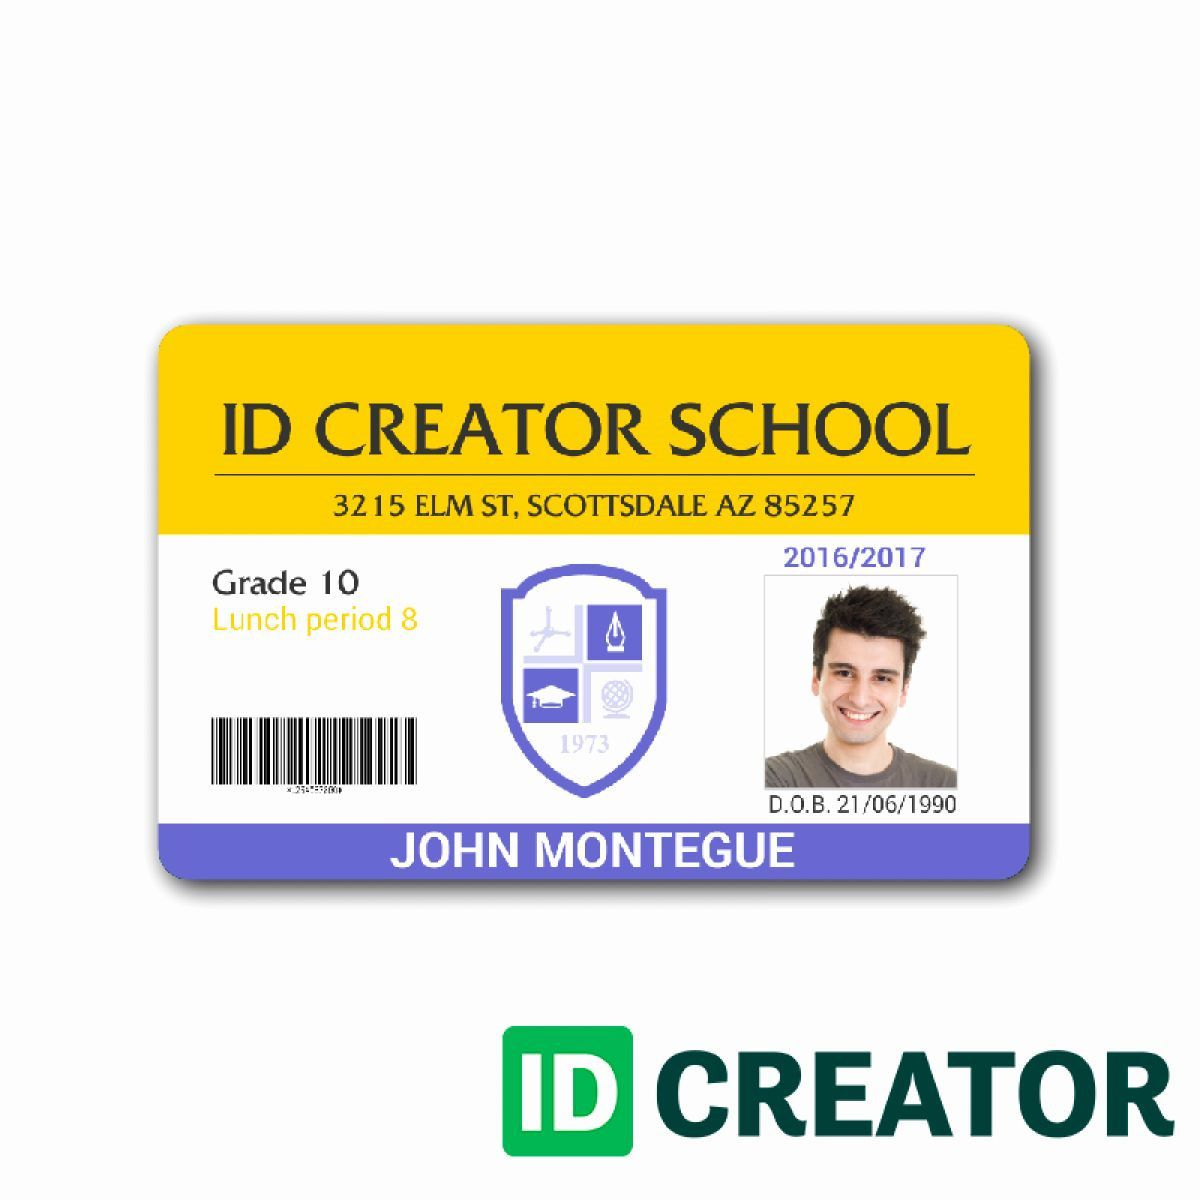 009 Sensational Student Id Card Template Concept  Design Free Download Word Employee Microsoft Vertical Identity PsdFull